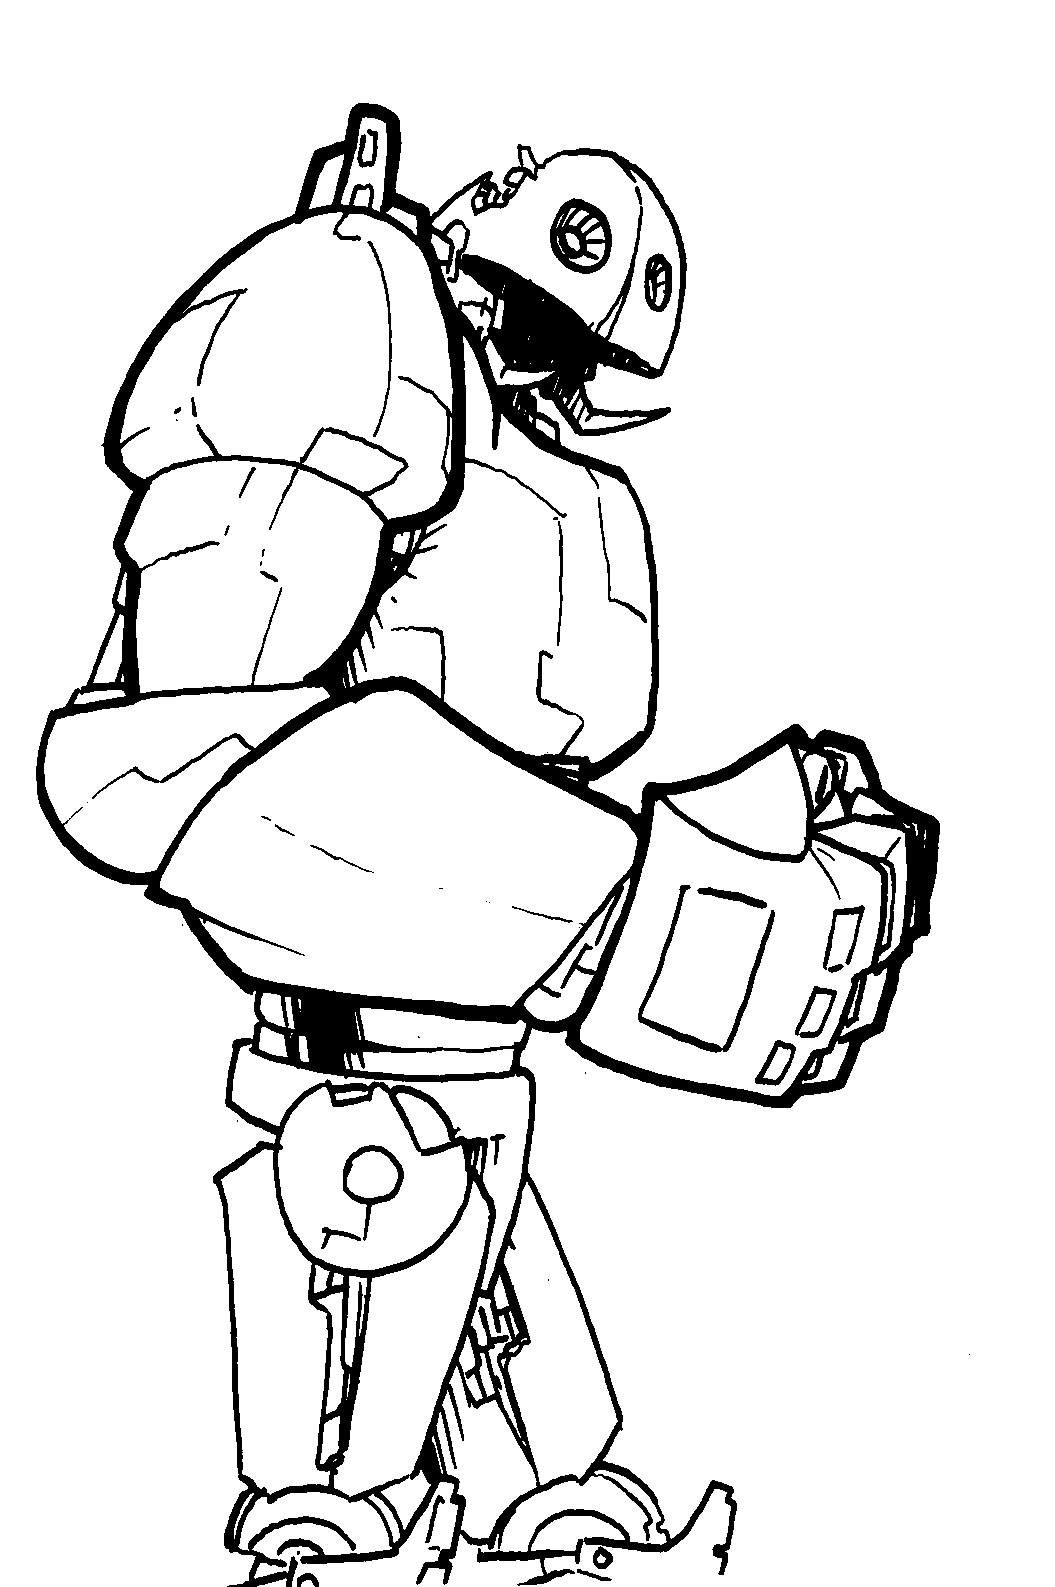 Drawn robot Robot to and moved I